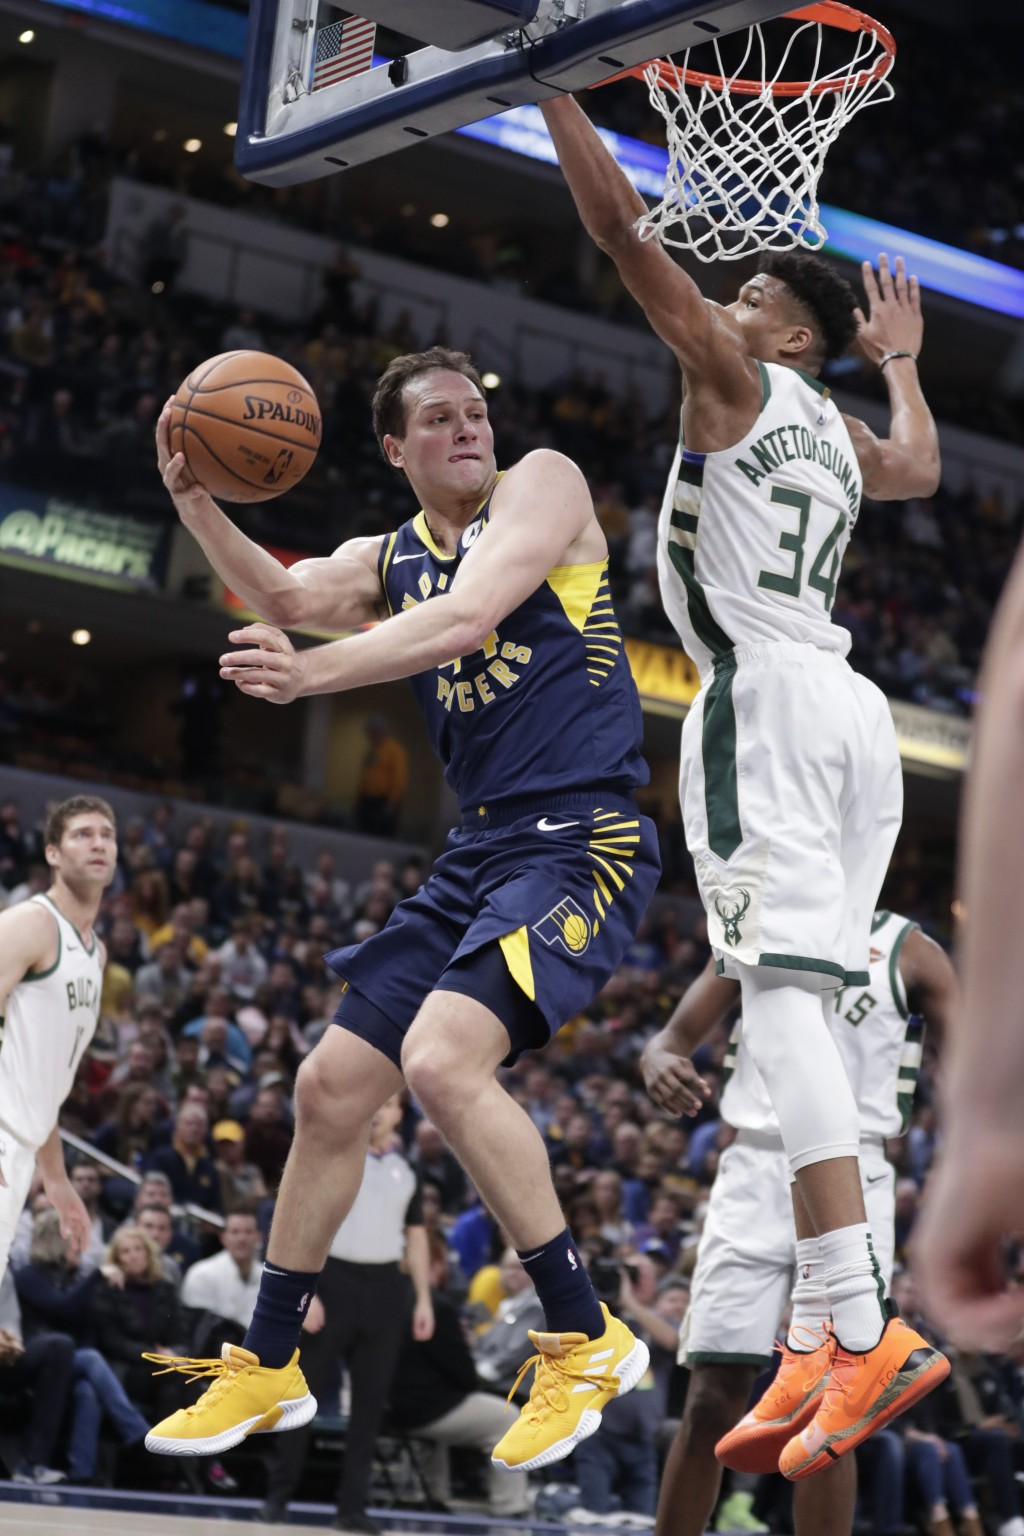 Indiana Pacers forward Bojan Bogdanovic (44) makes a pass around Milwaukee Bucks forward Giannis Antetokounmpo (34) during the first half of an NBA ba